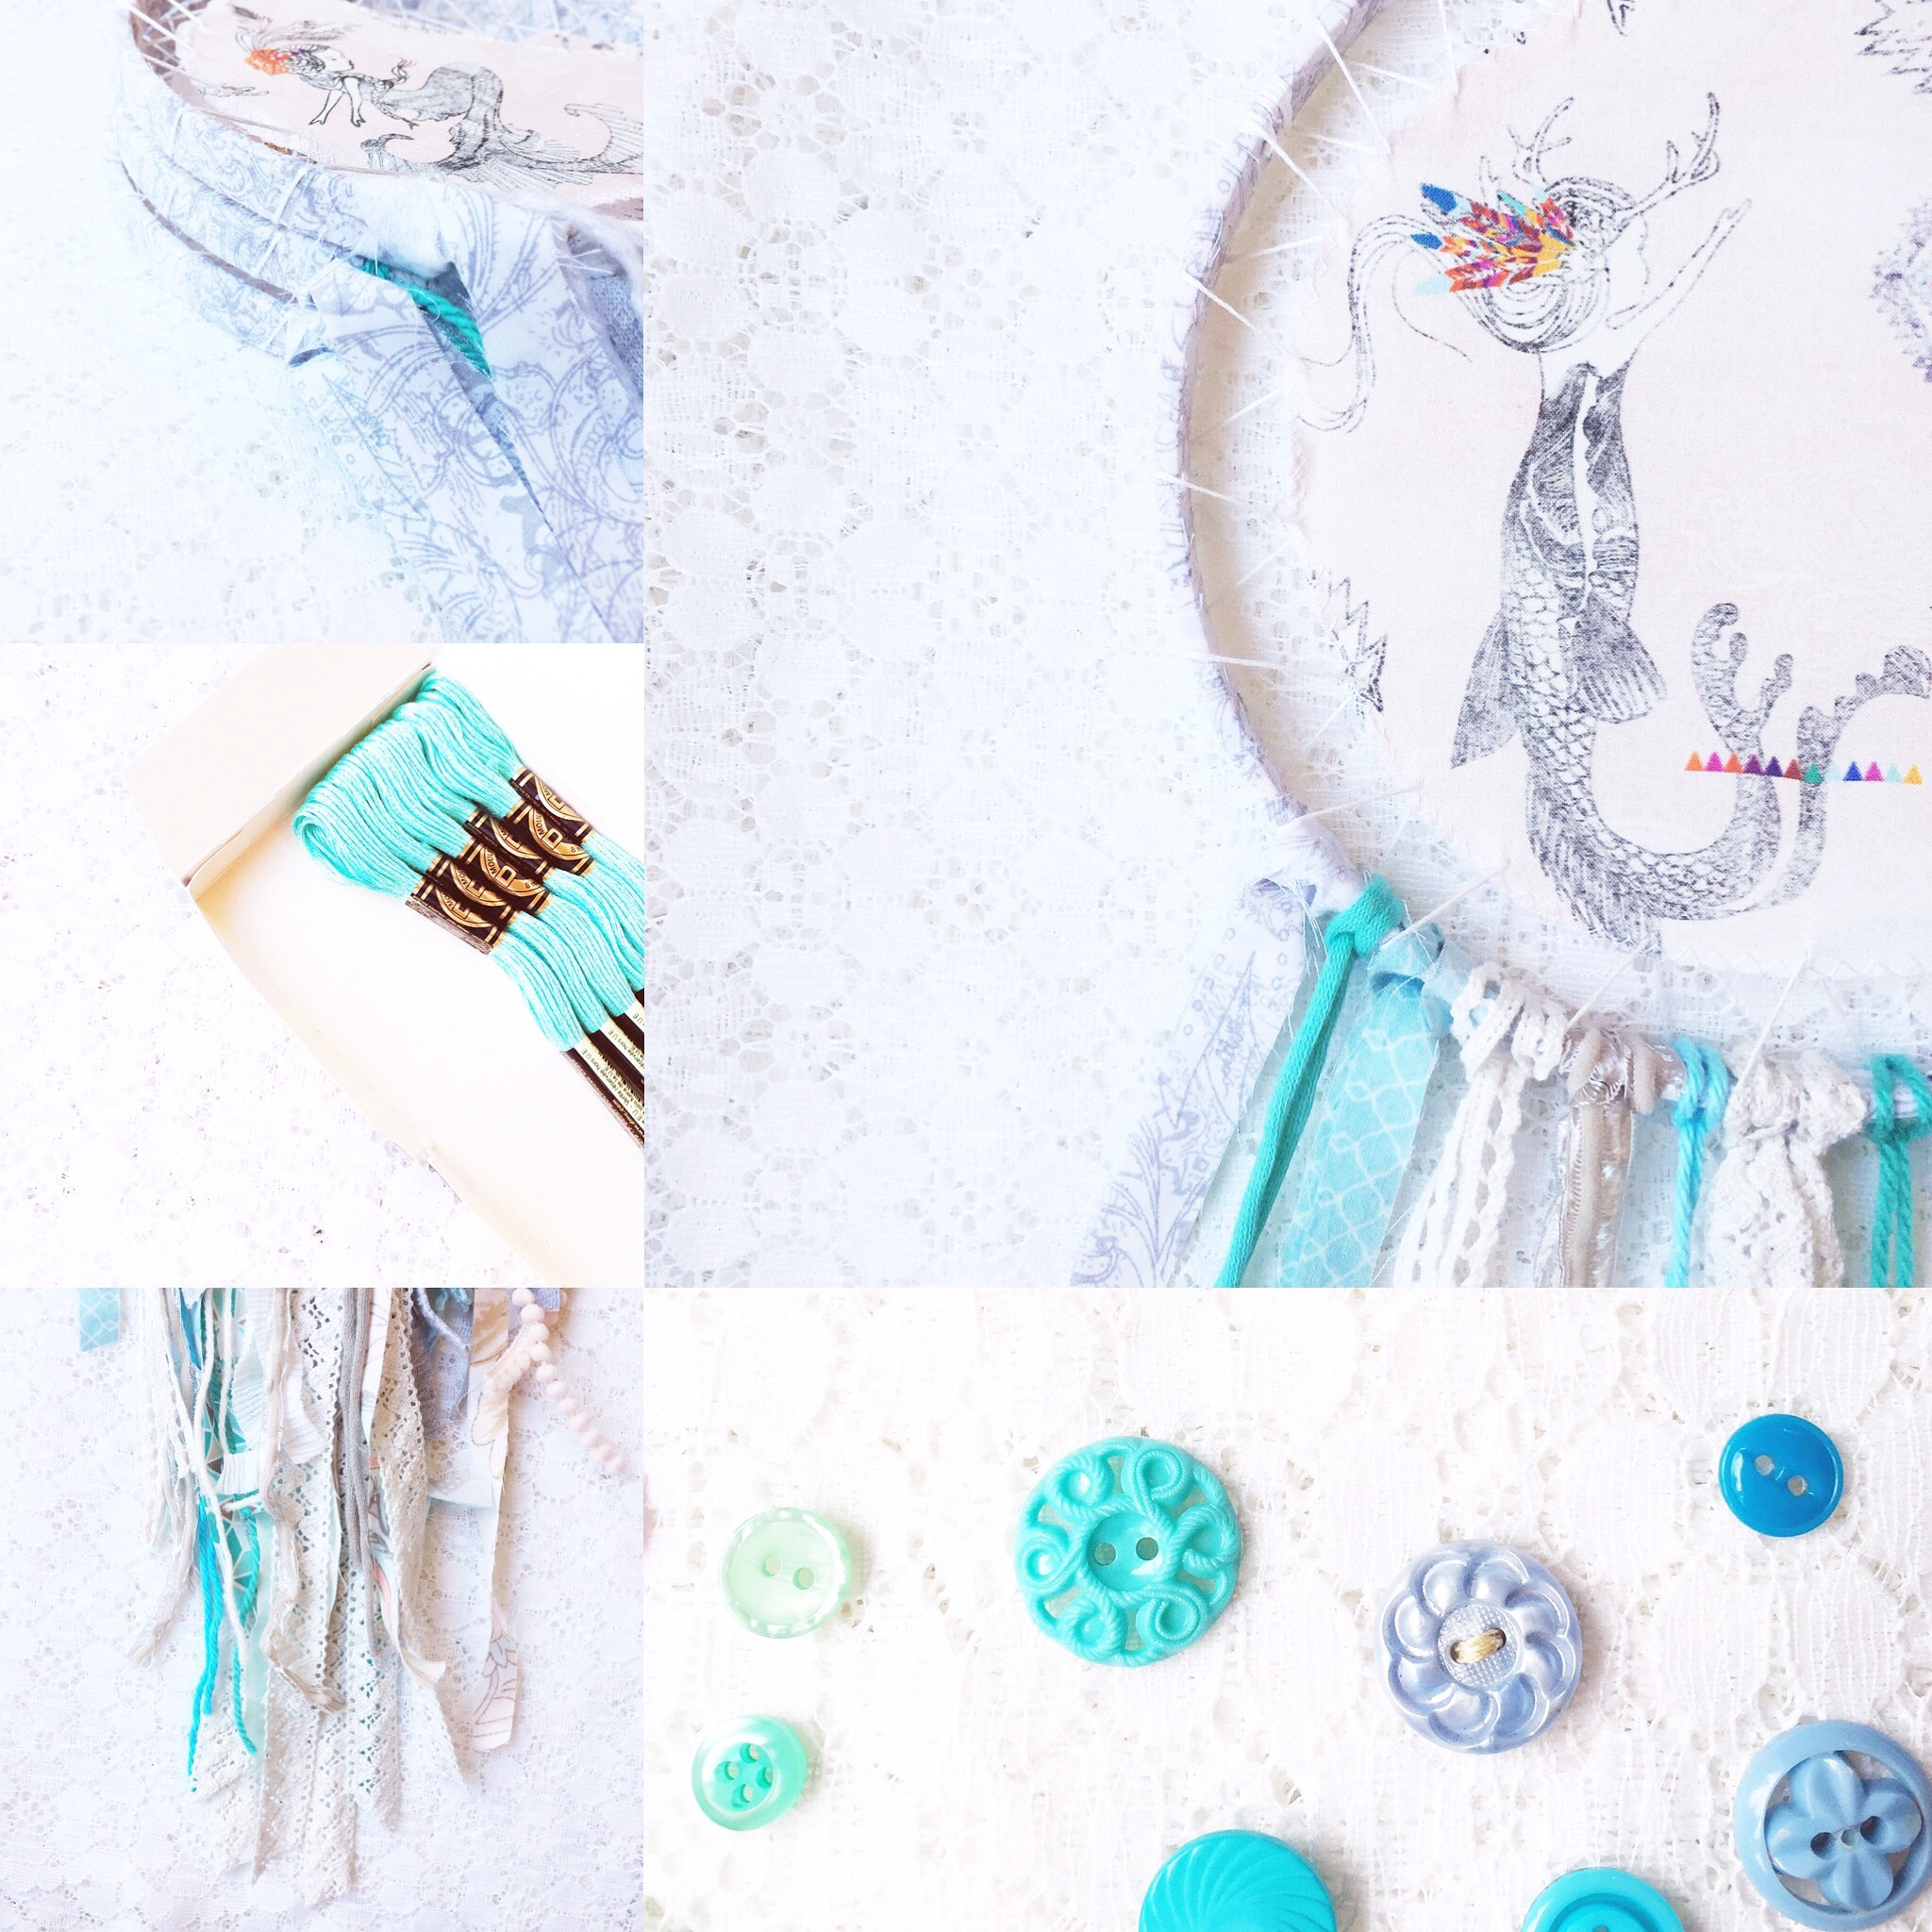 Weekly Color Inspiration ~ By Bubblegum Sass ~ Boho Mermaid ~ Nursery Room & Girl's Room Decor Inspo